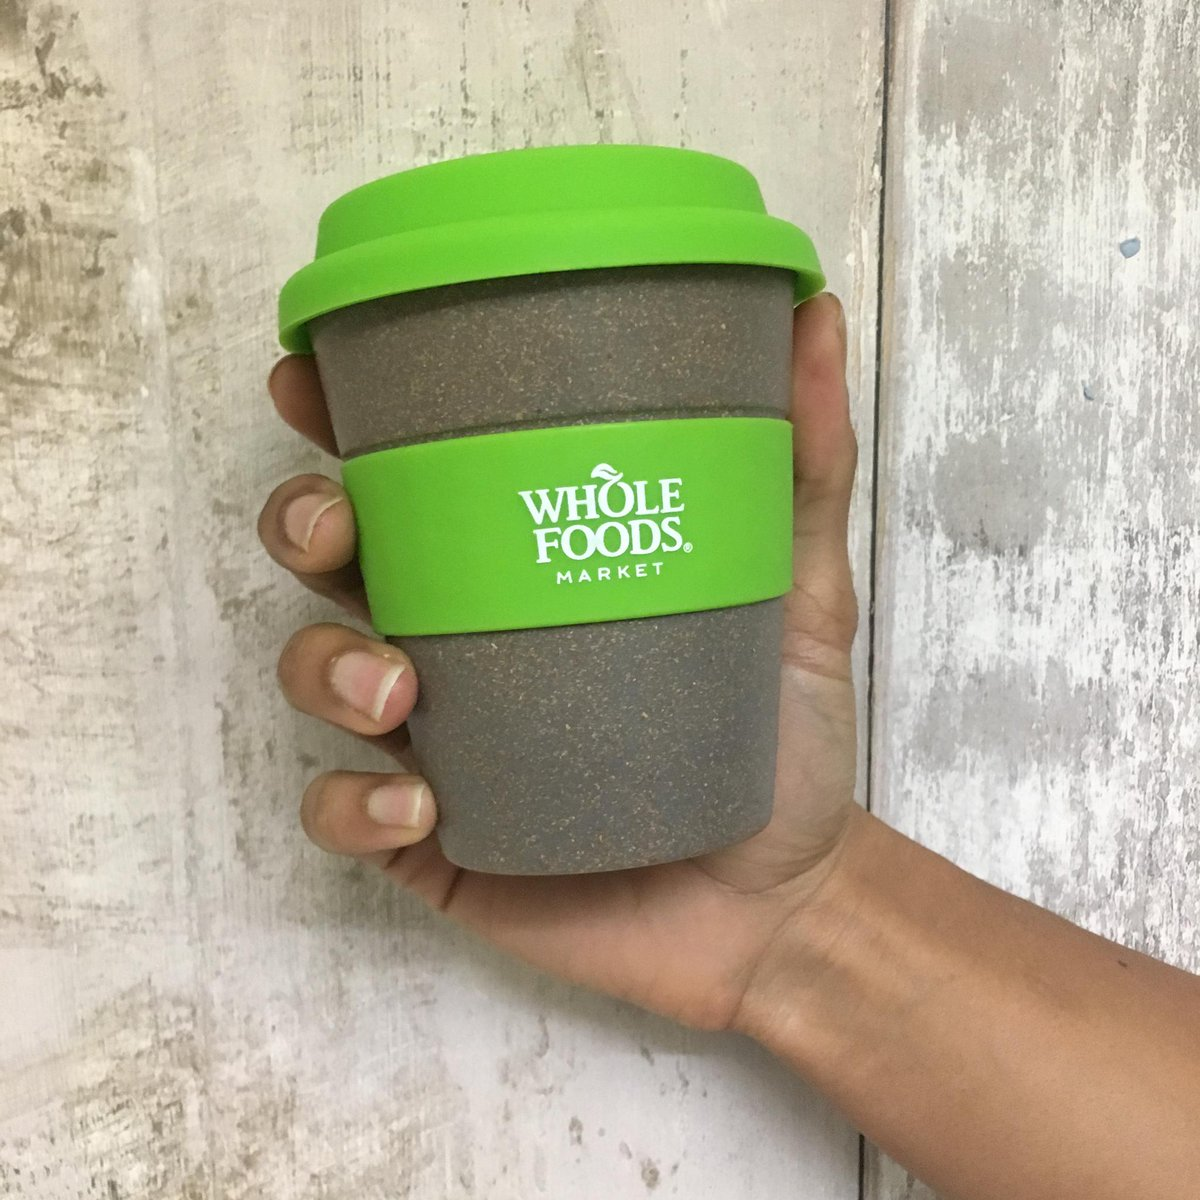 Whole Foods Uk On Twitter In Preparation For Earthday